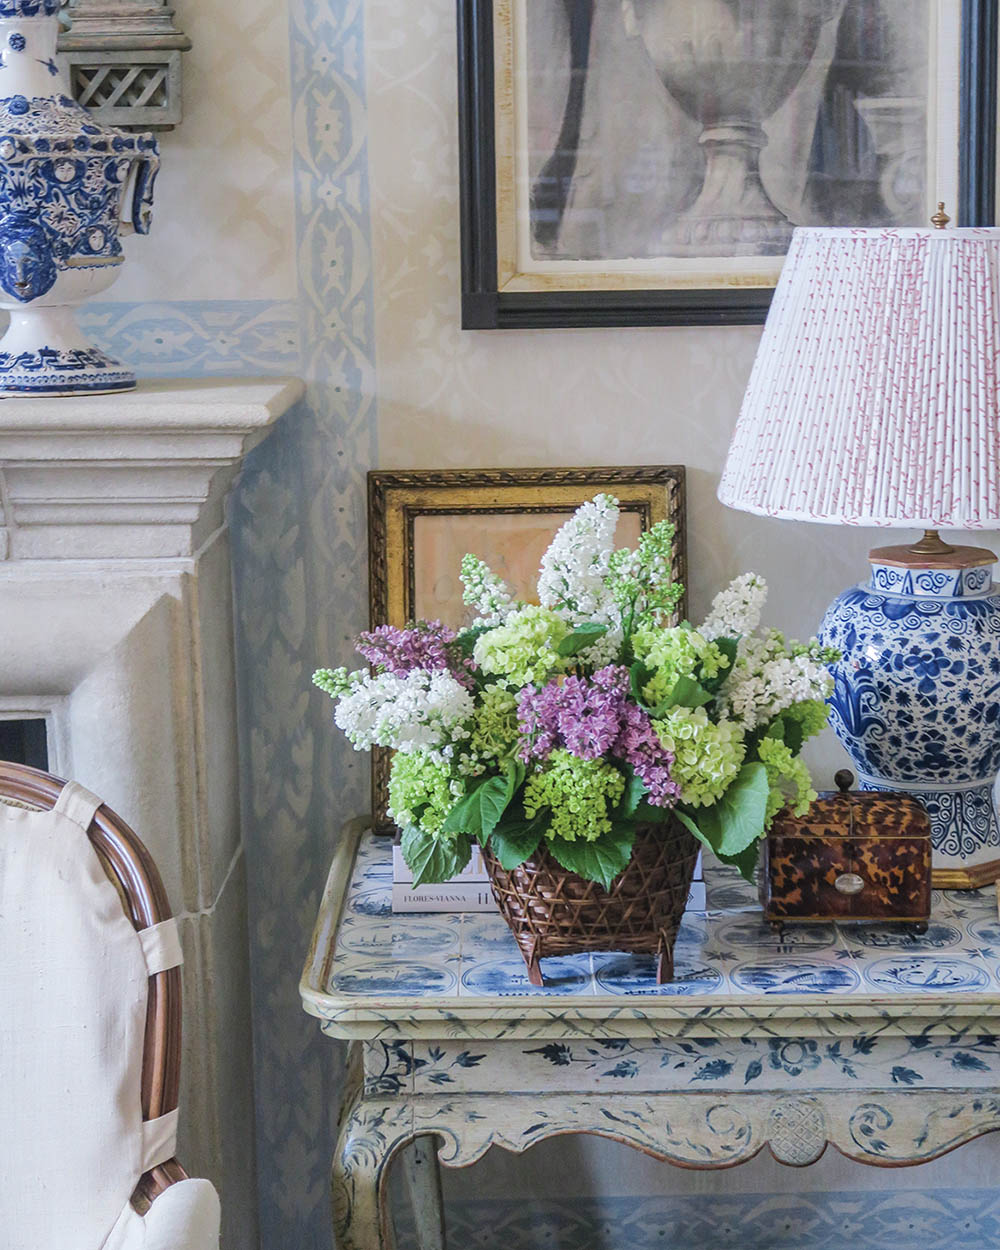 interiors vignette featuring a vase of lilacs on a side table beside a blue-and-white chinoiserie lamp